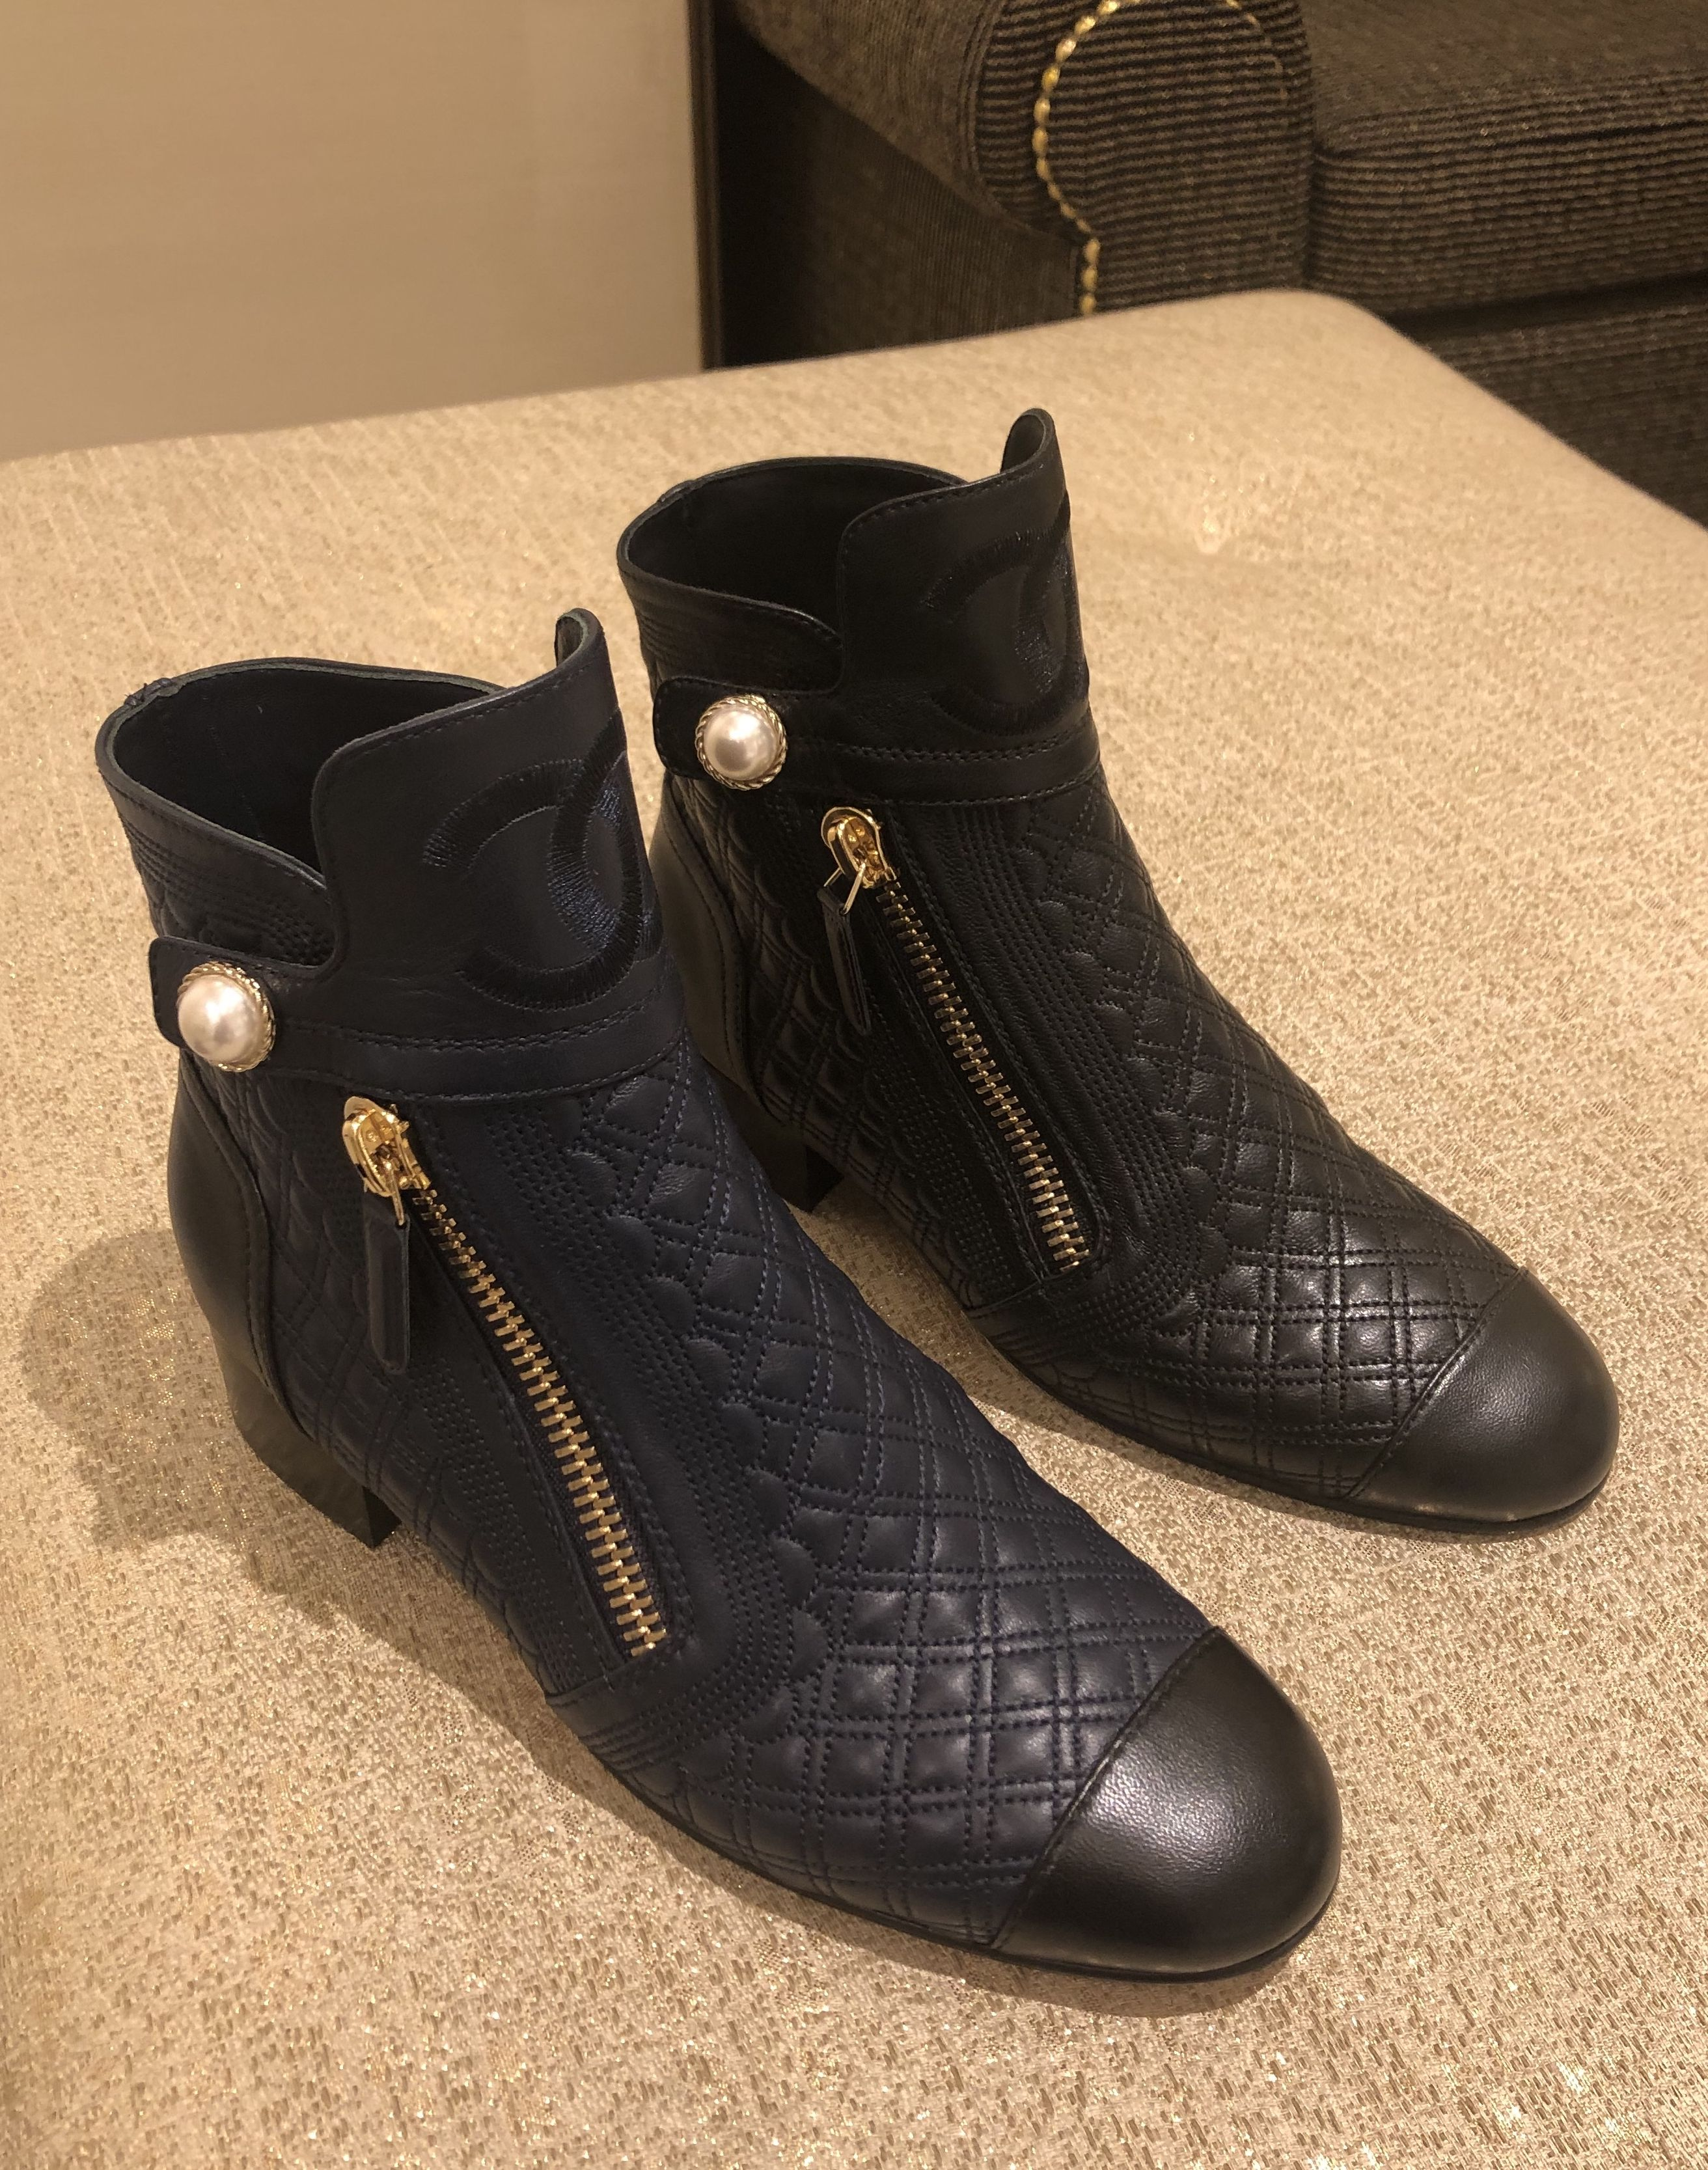 Boots, Chanel boots, Leather ankle boots